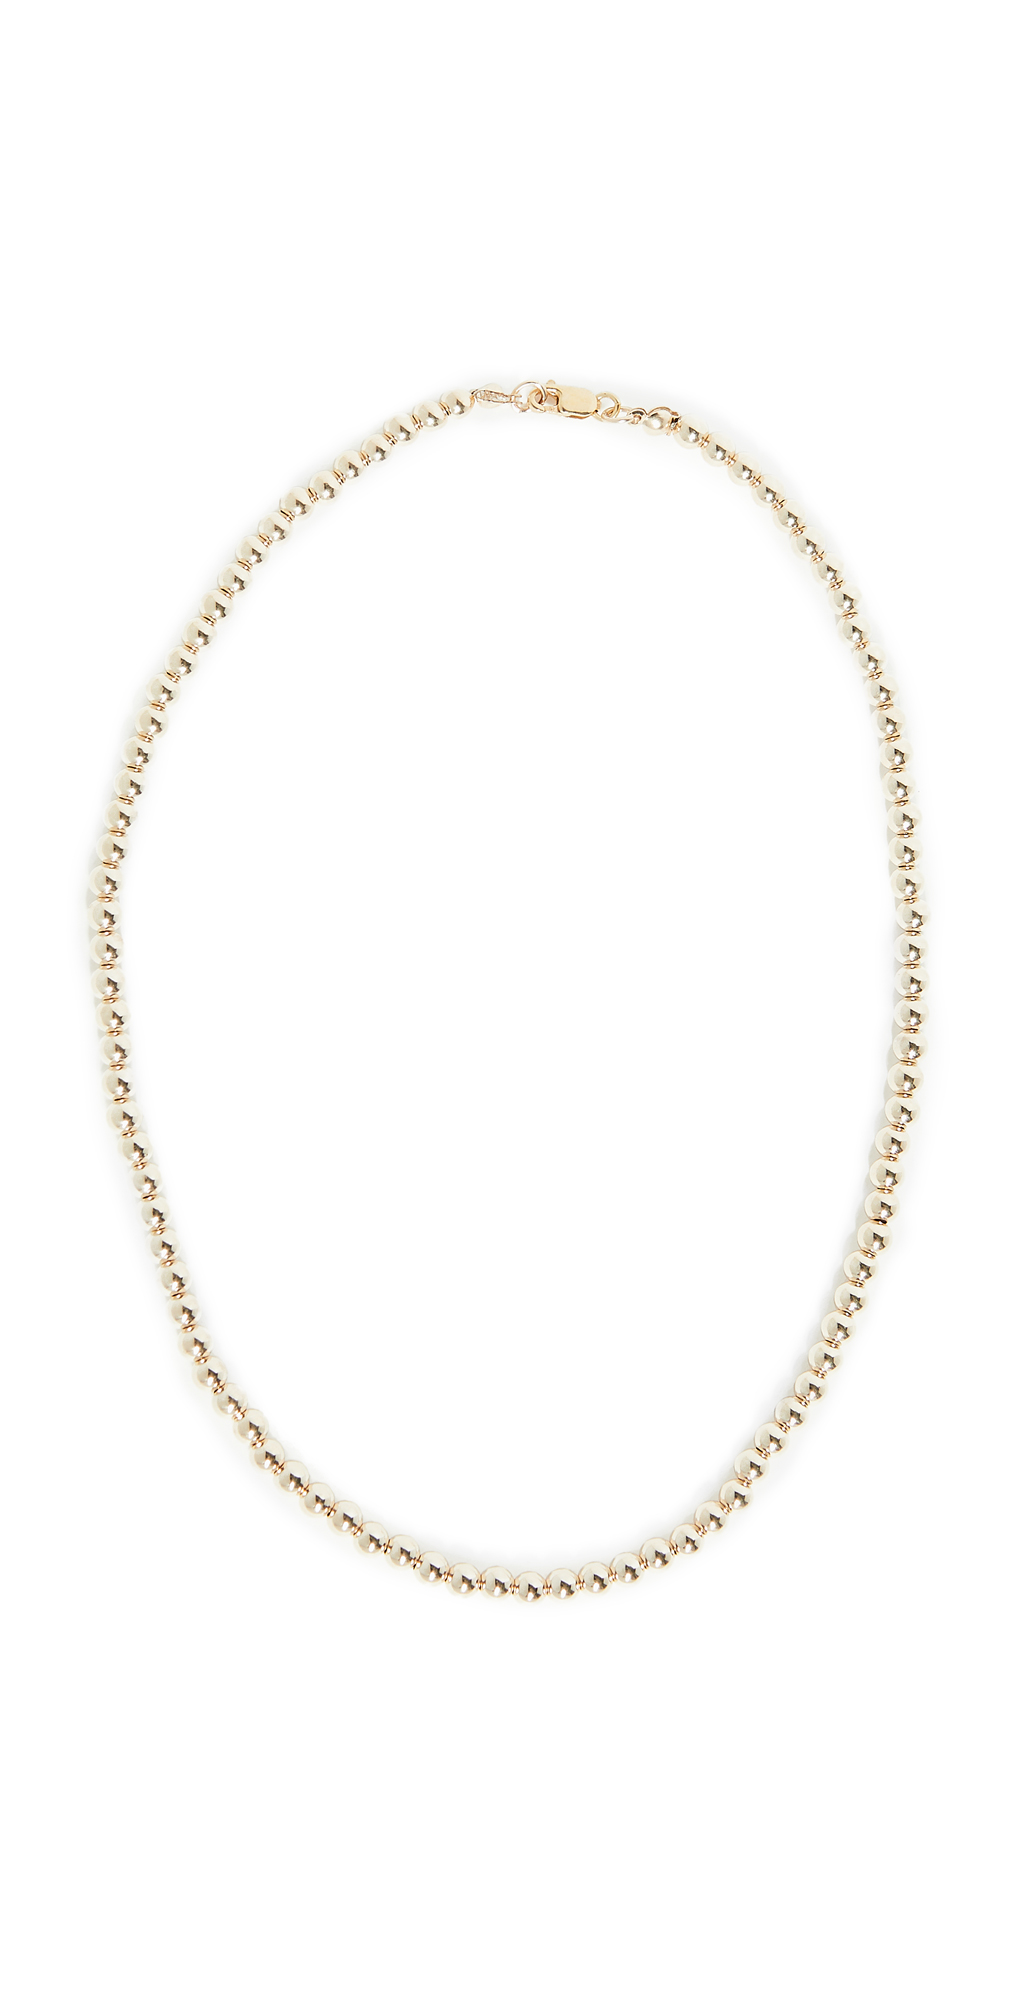 4mm Yellow Gold Necklace